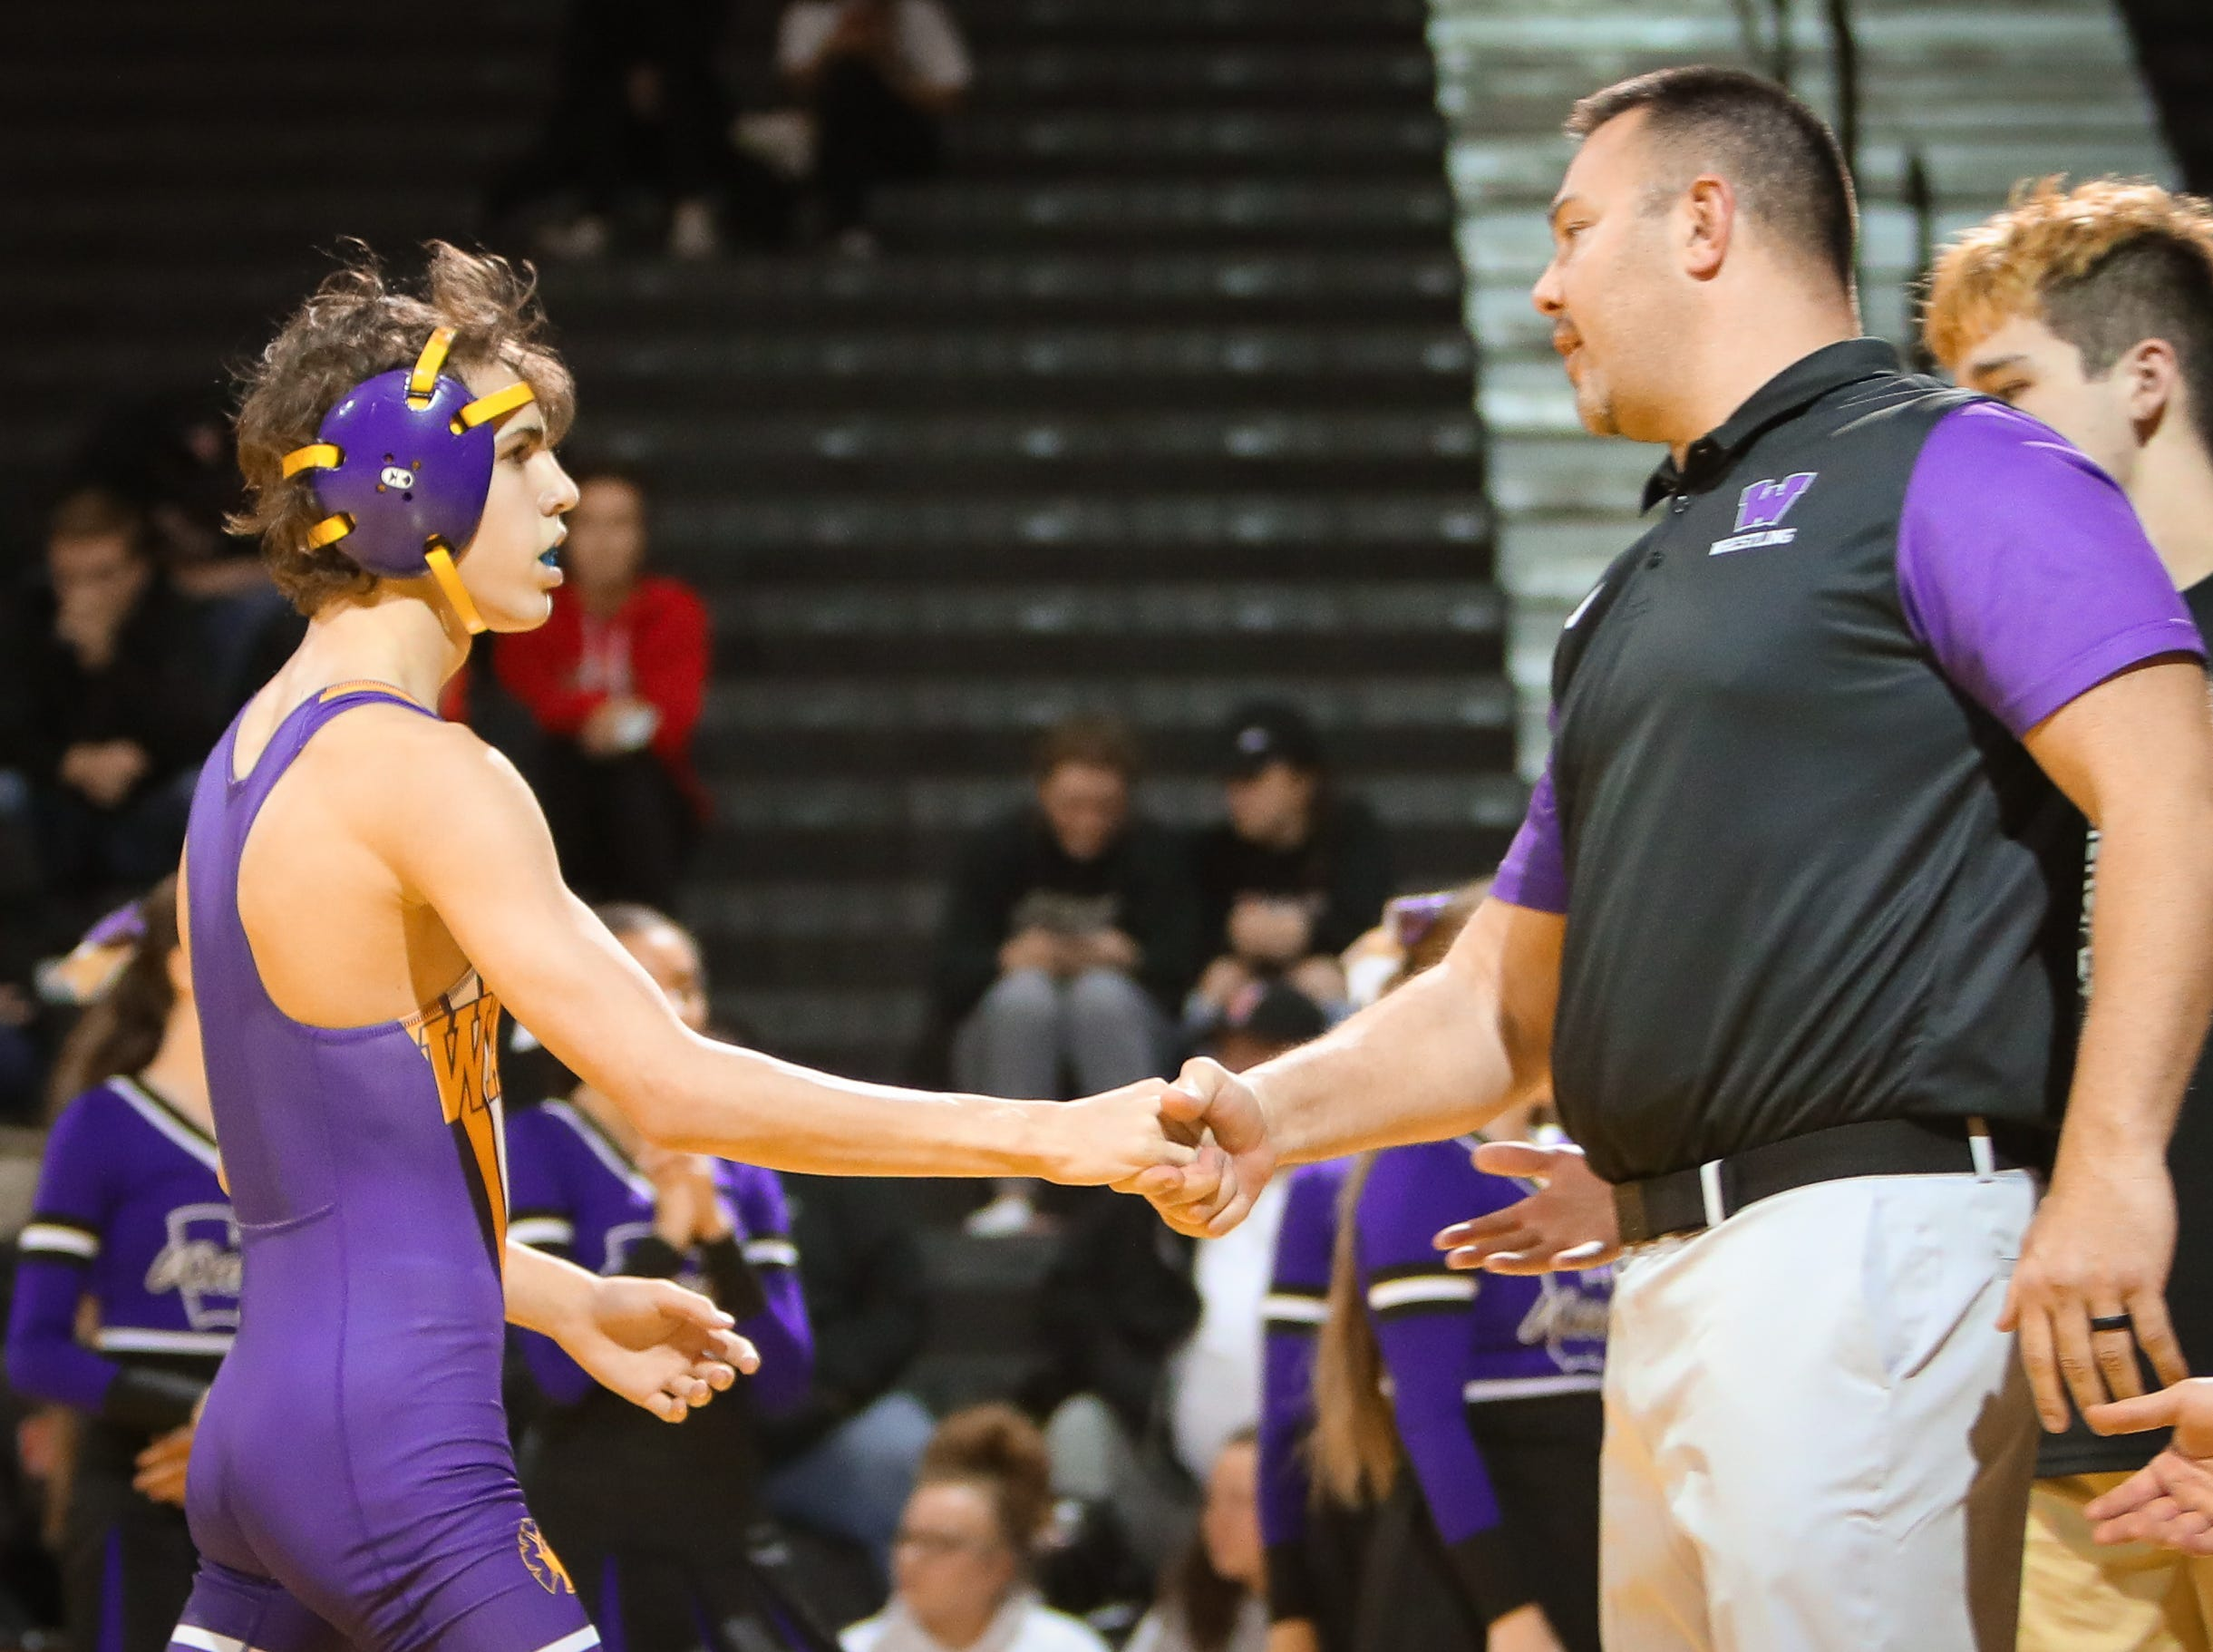 Waukee sophomore Connor Kellely celebrates with head coach Chad Vollmecke after winning the 106-pound weight class during a high school wrestling meet between the Valley Tigers and the Waukee Warriors at Waukee High School on Dec. 20, 2018 in Waukee, Iowa.